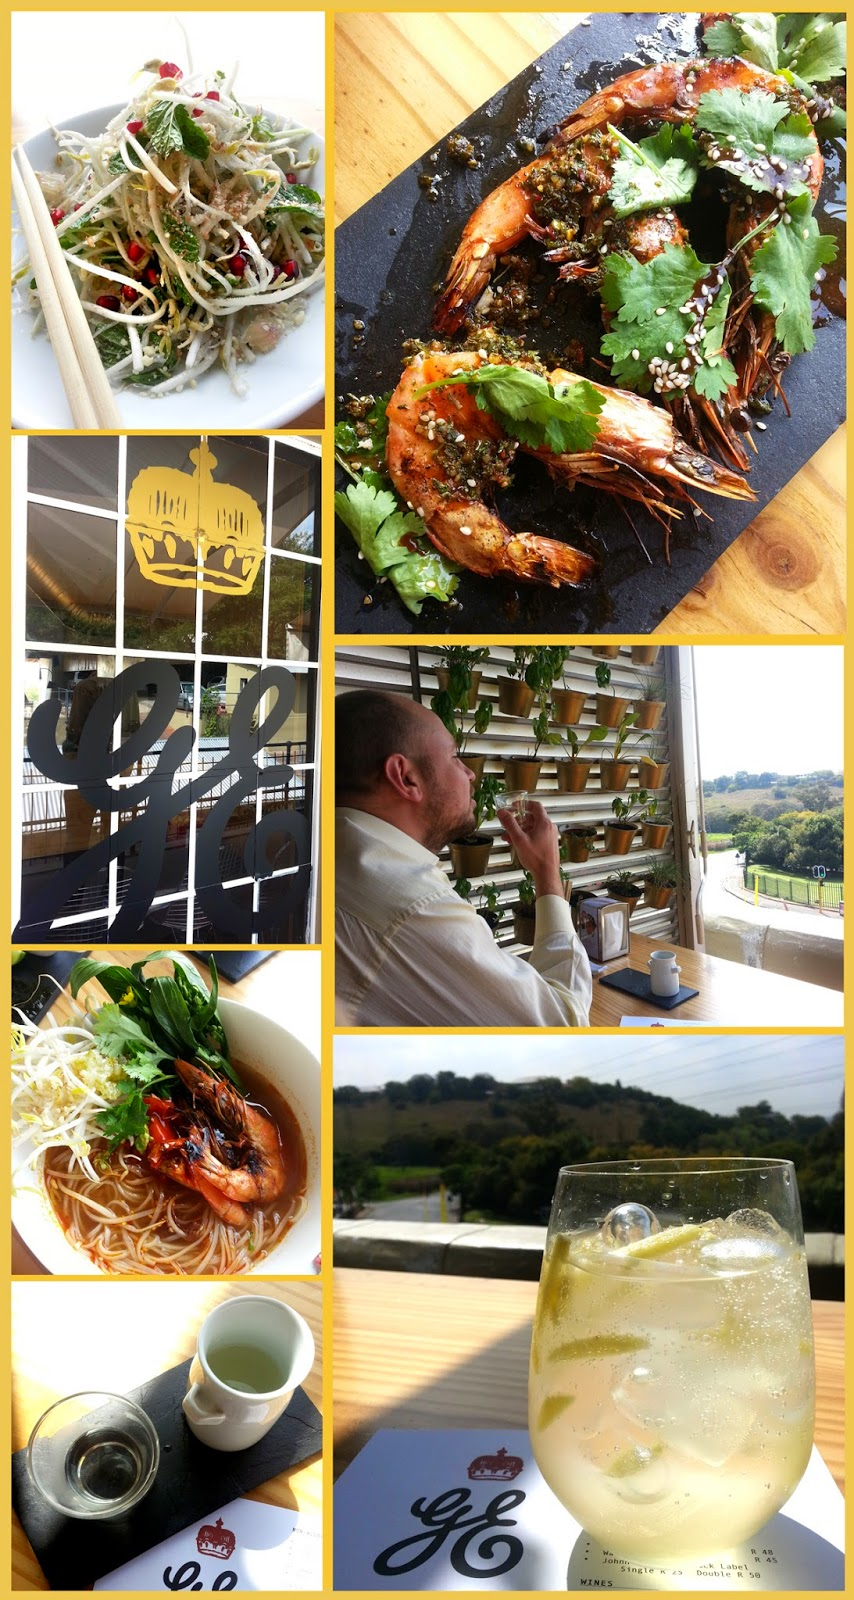 Lekkerbek asian eats with a view great eastern food bar for Eastern food bar johannesburg